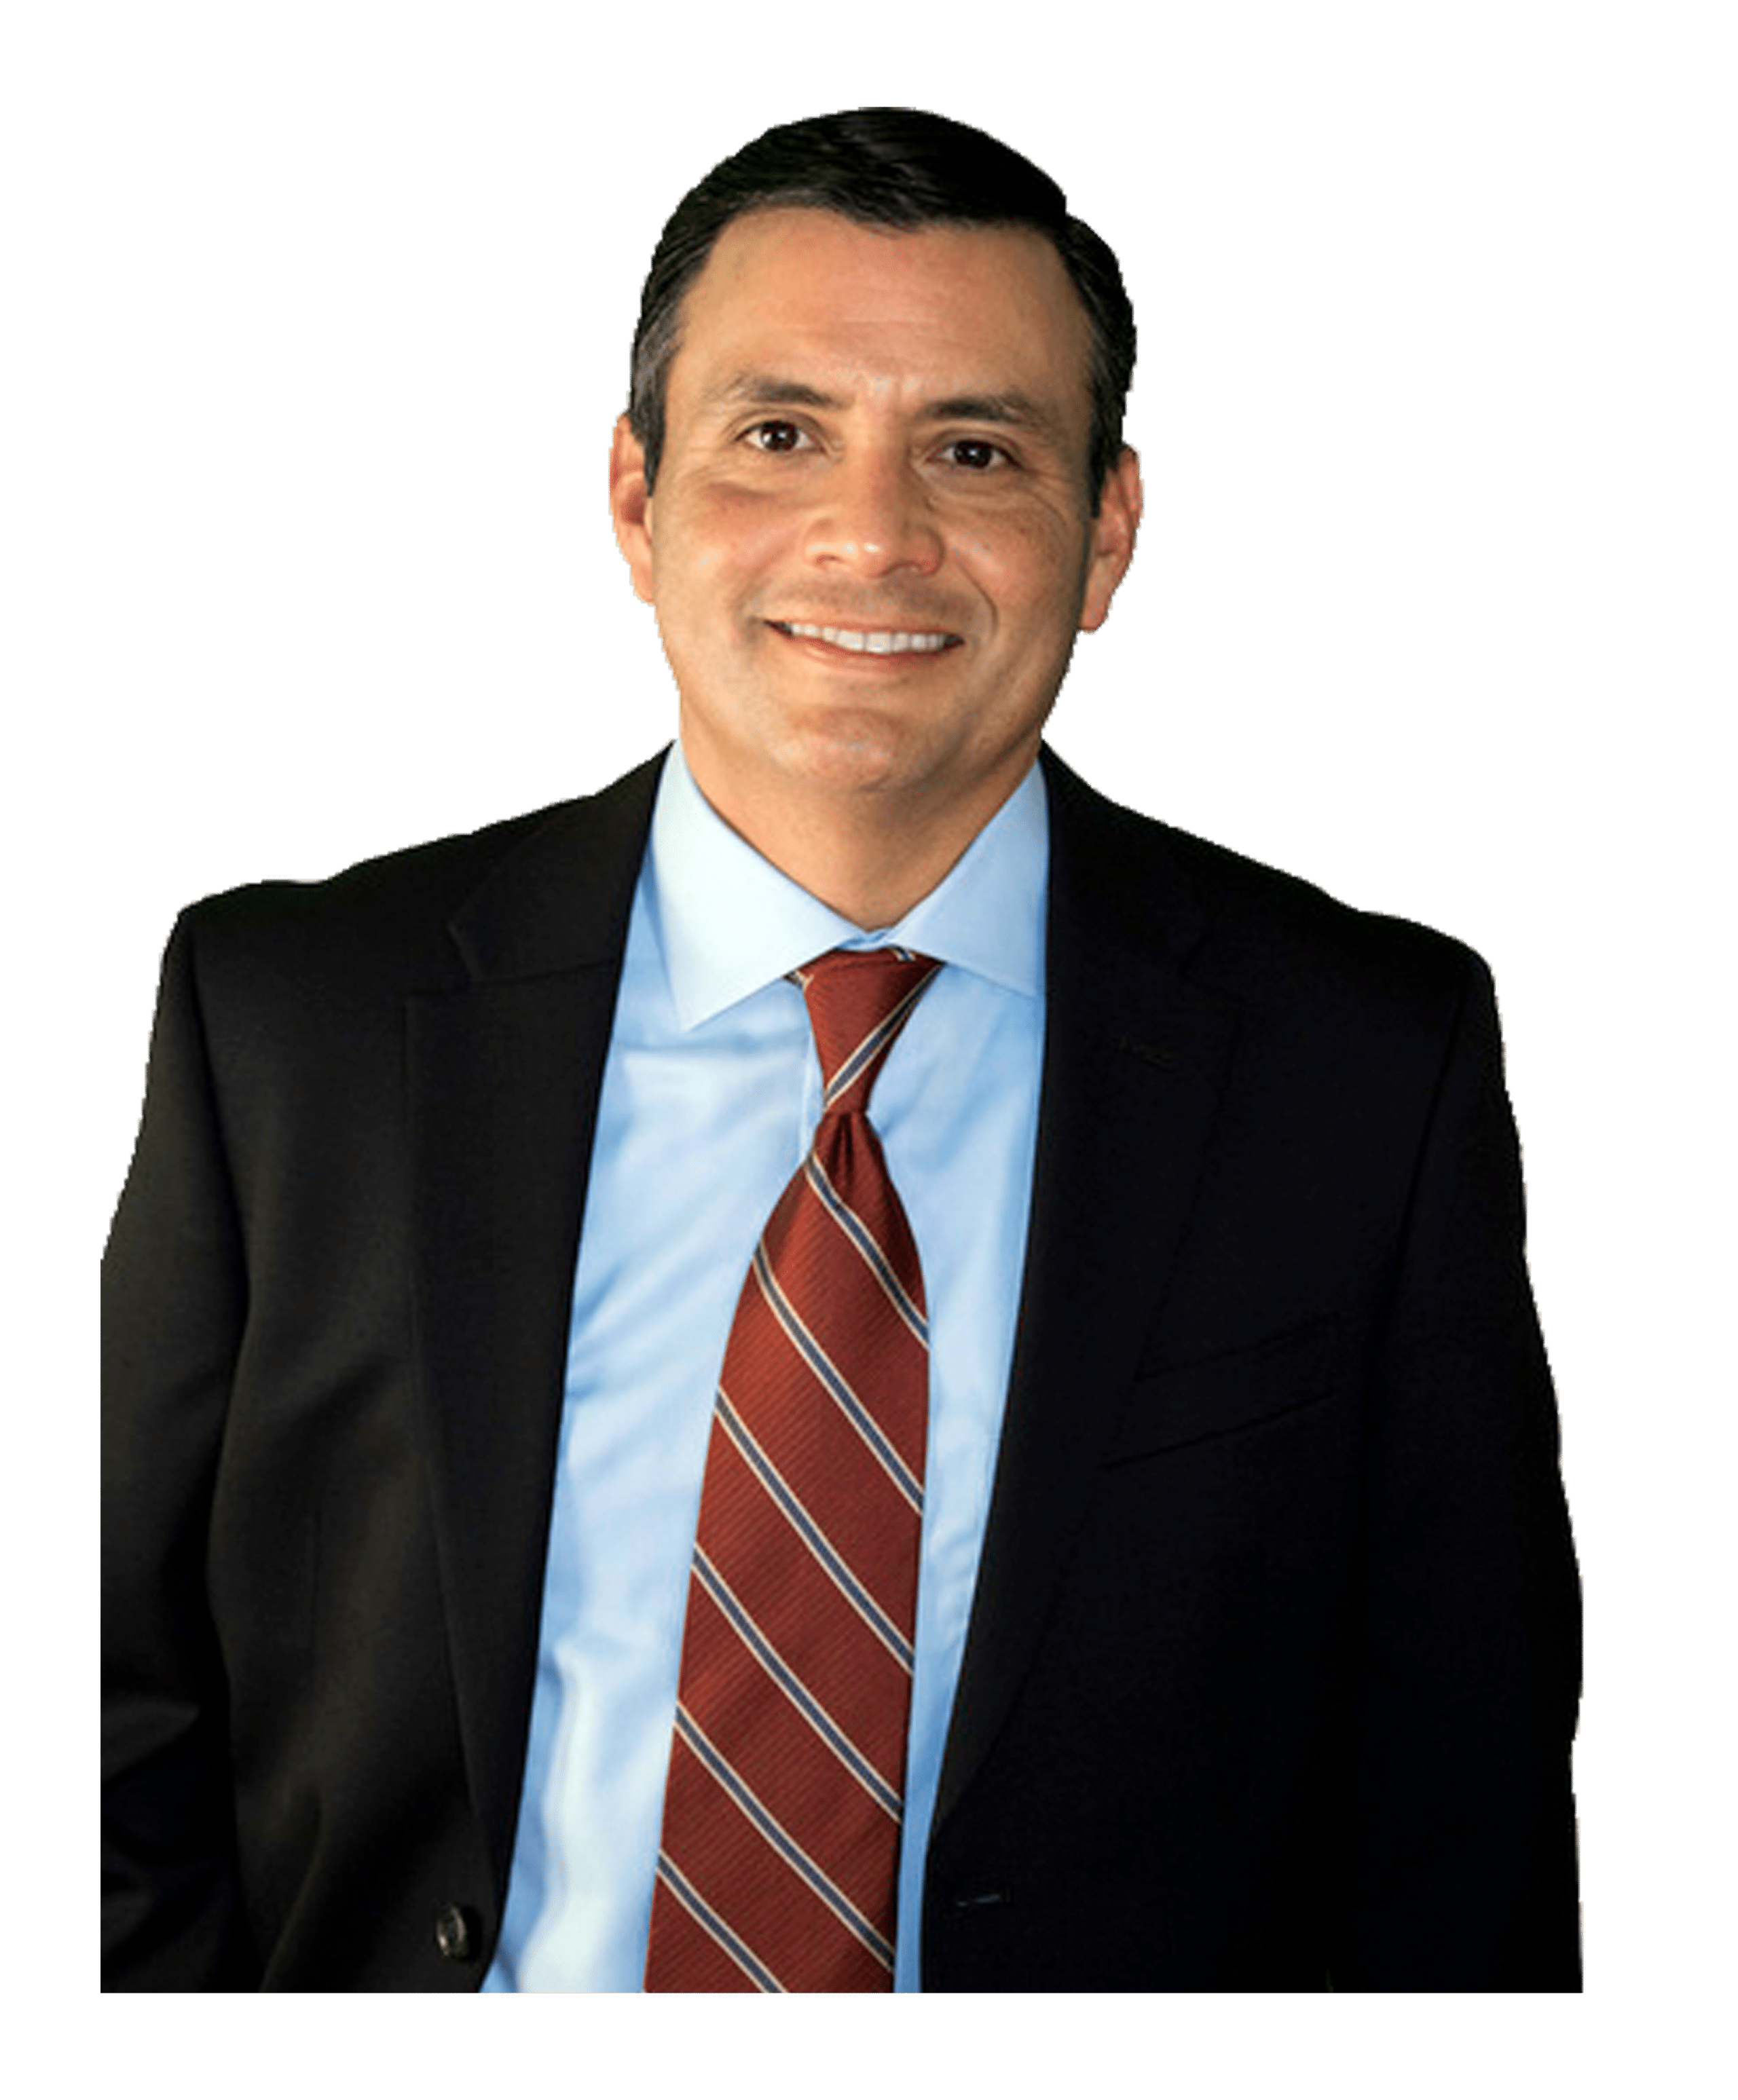 paul gaytan attorney - paul gaytan lawyer mcallen